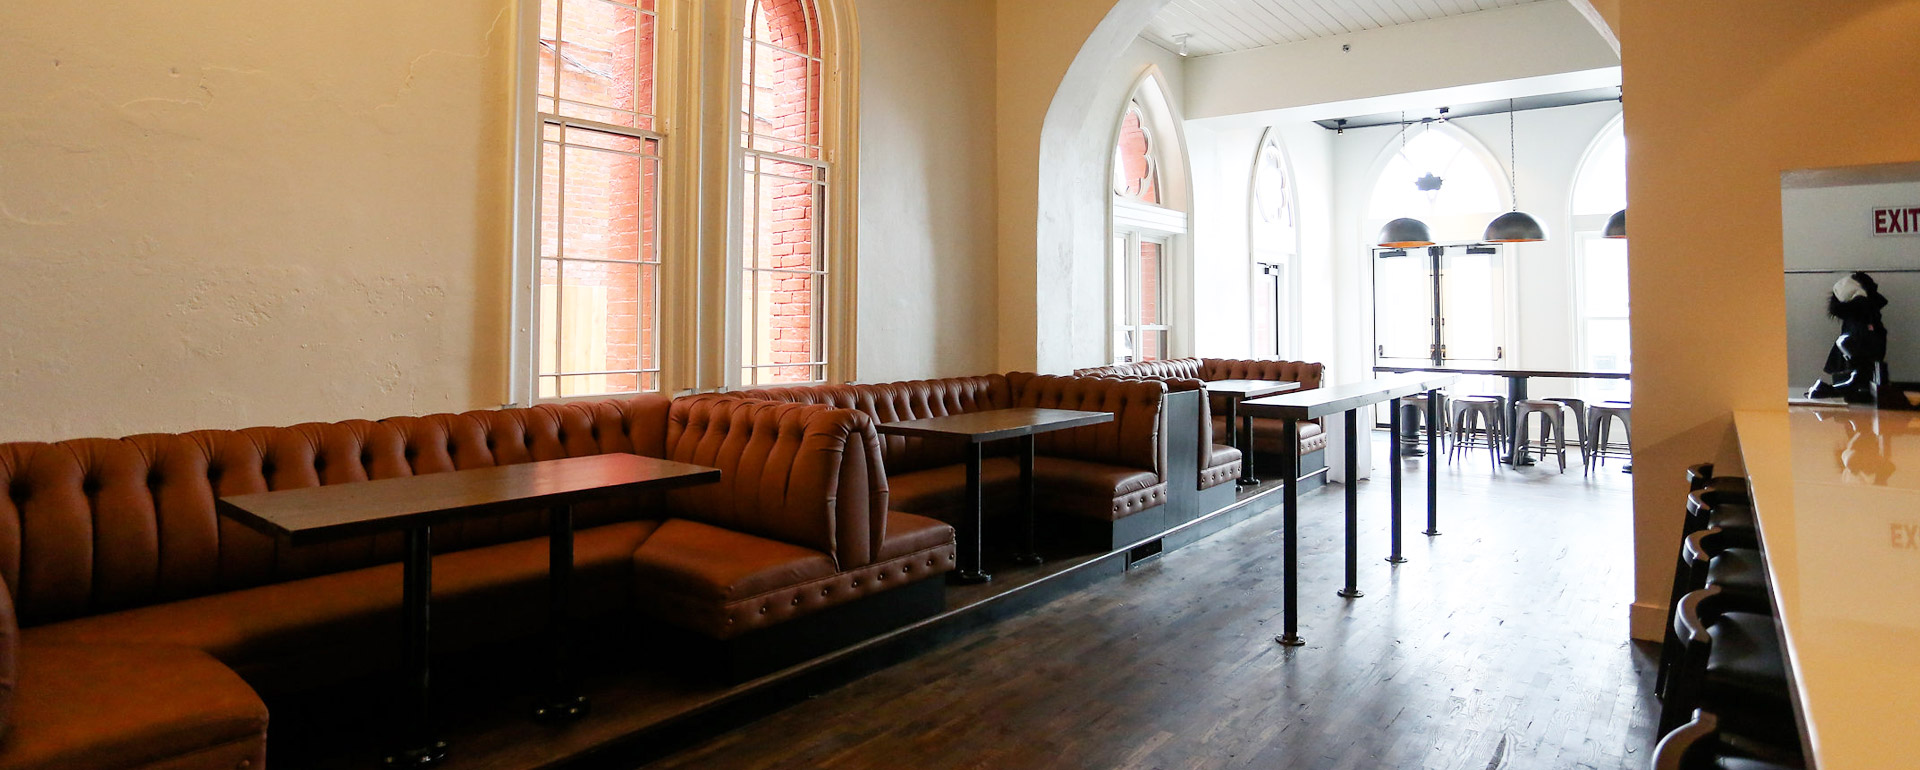 The North Tap Room at The Transept